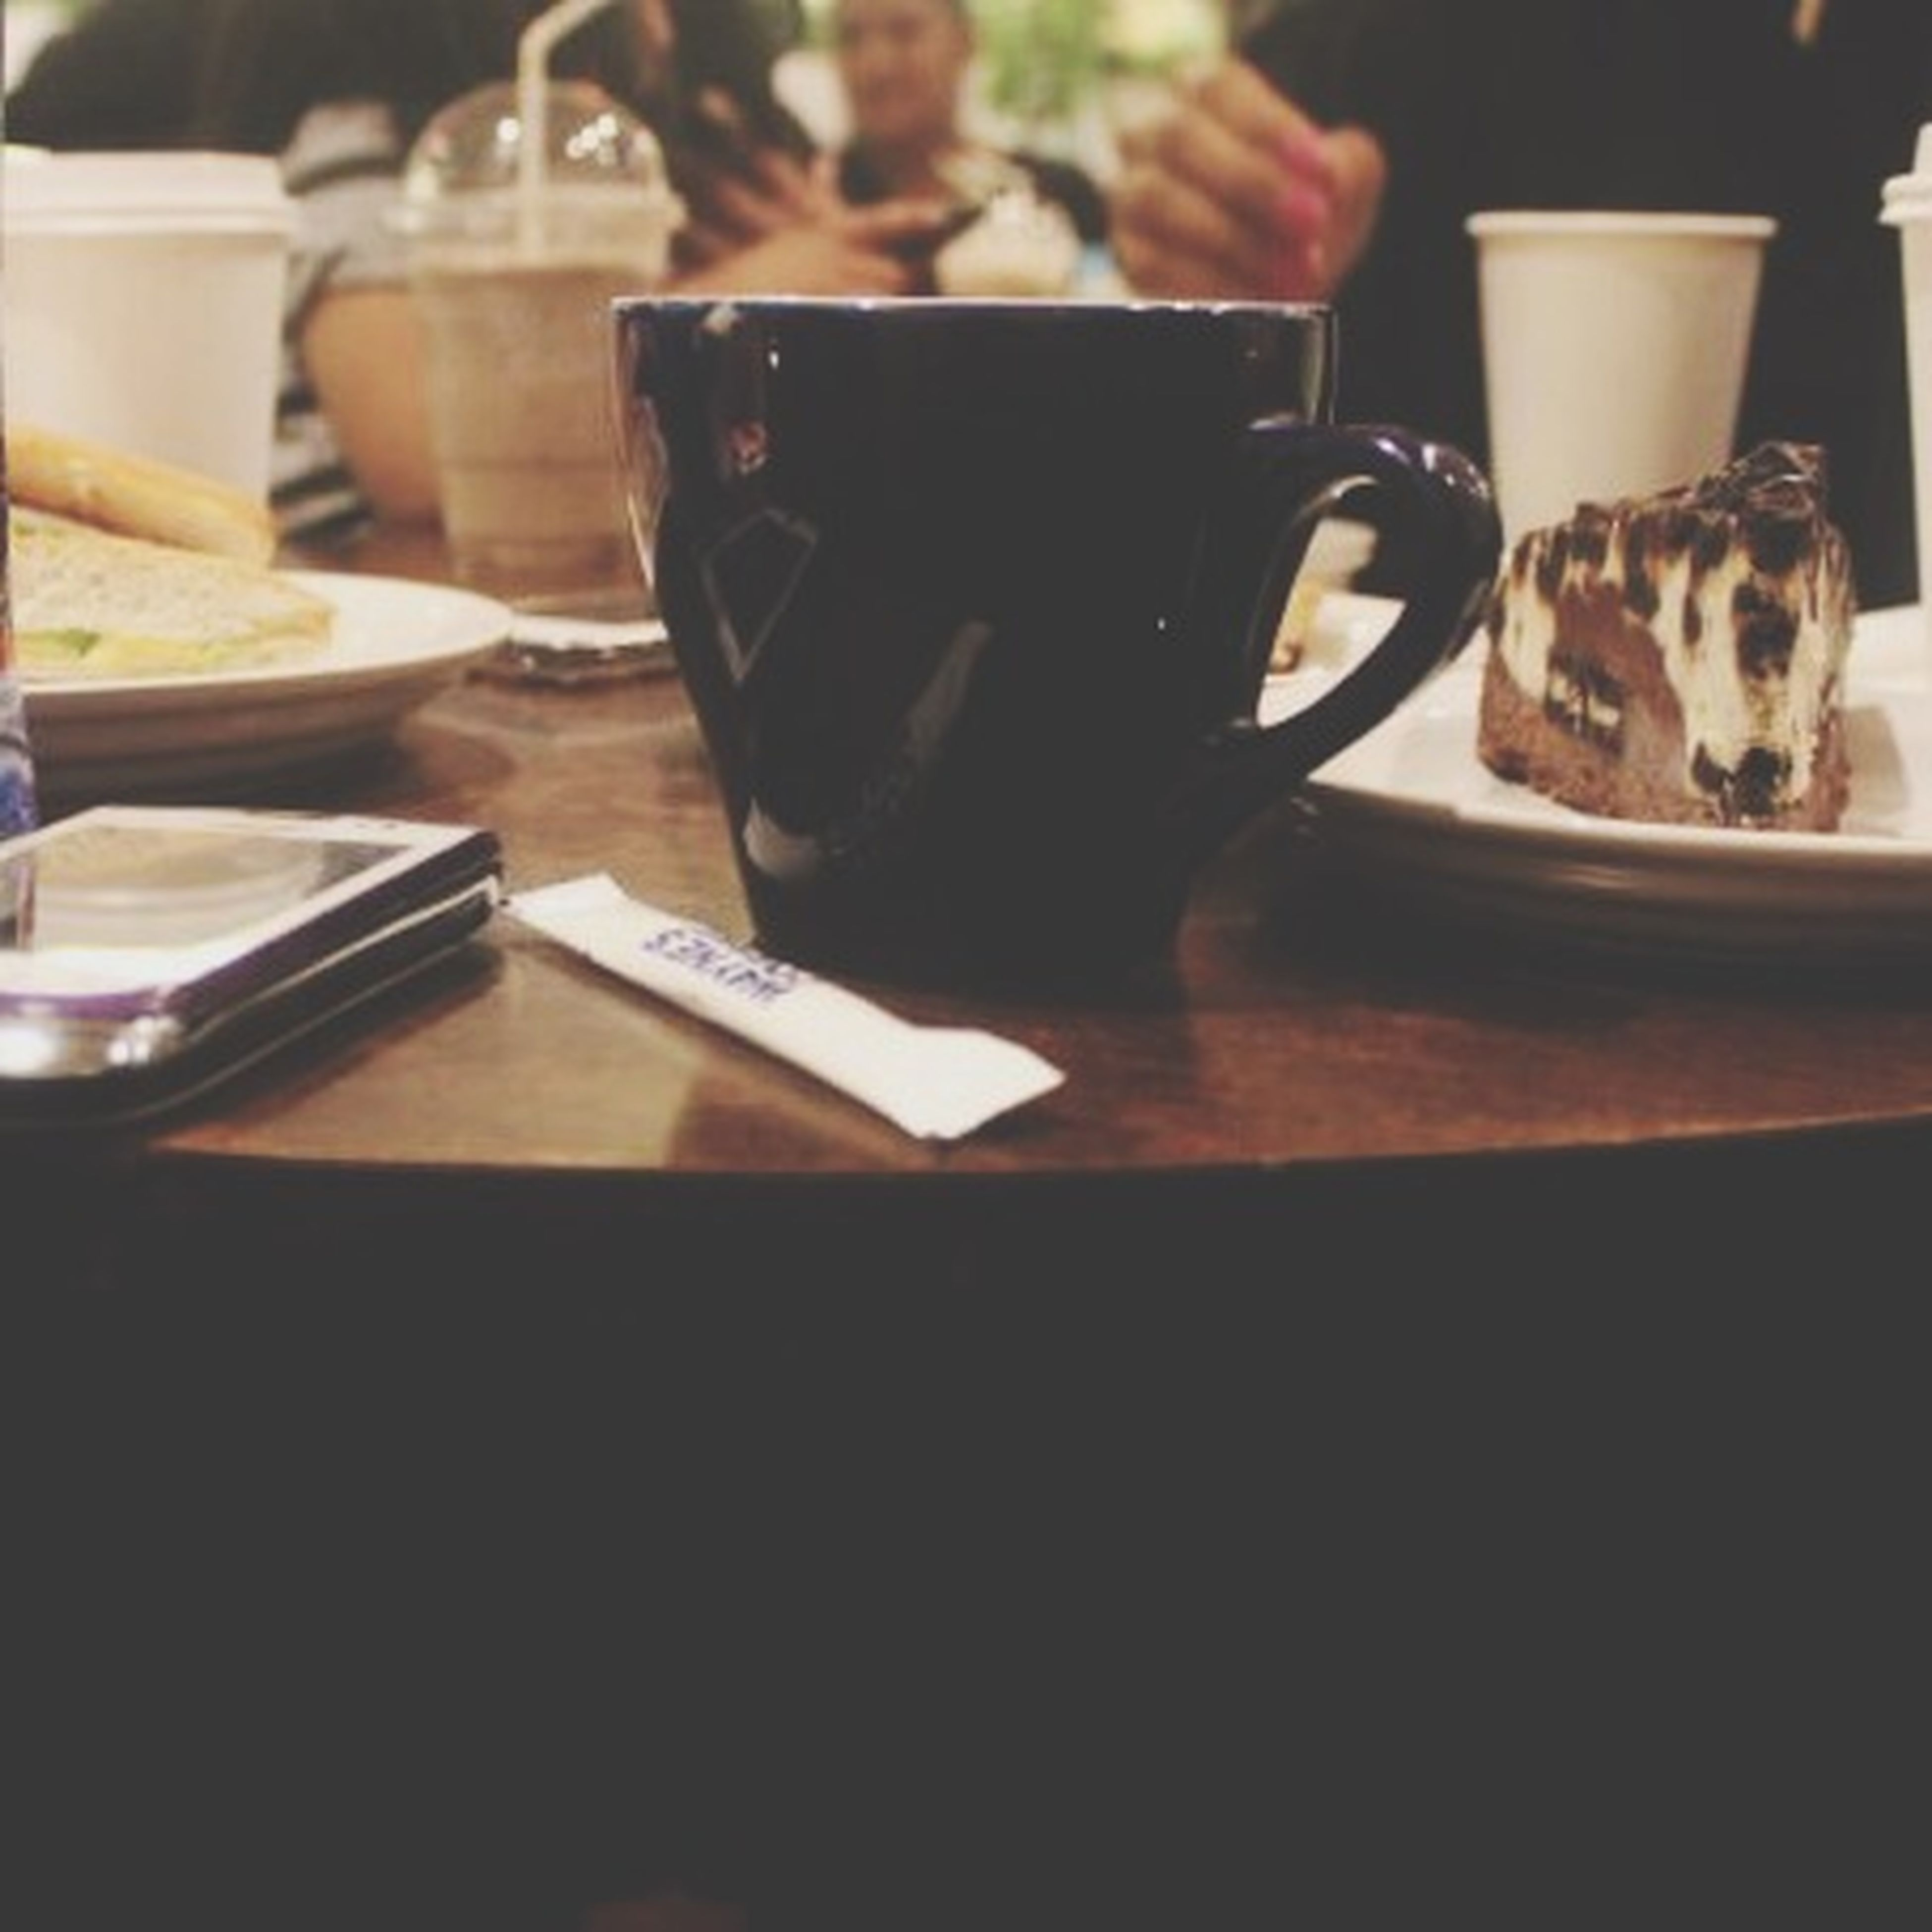 indoors, table, food and drink, drink, still life, coffee cup, close-up, refreshment, focus on foreground, coffee - drink, plate, cup, home interior, no people, chair, selective focus, restaurant, pets, freshness, high angle view